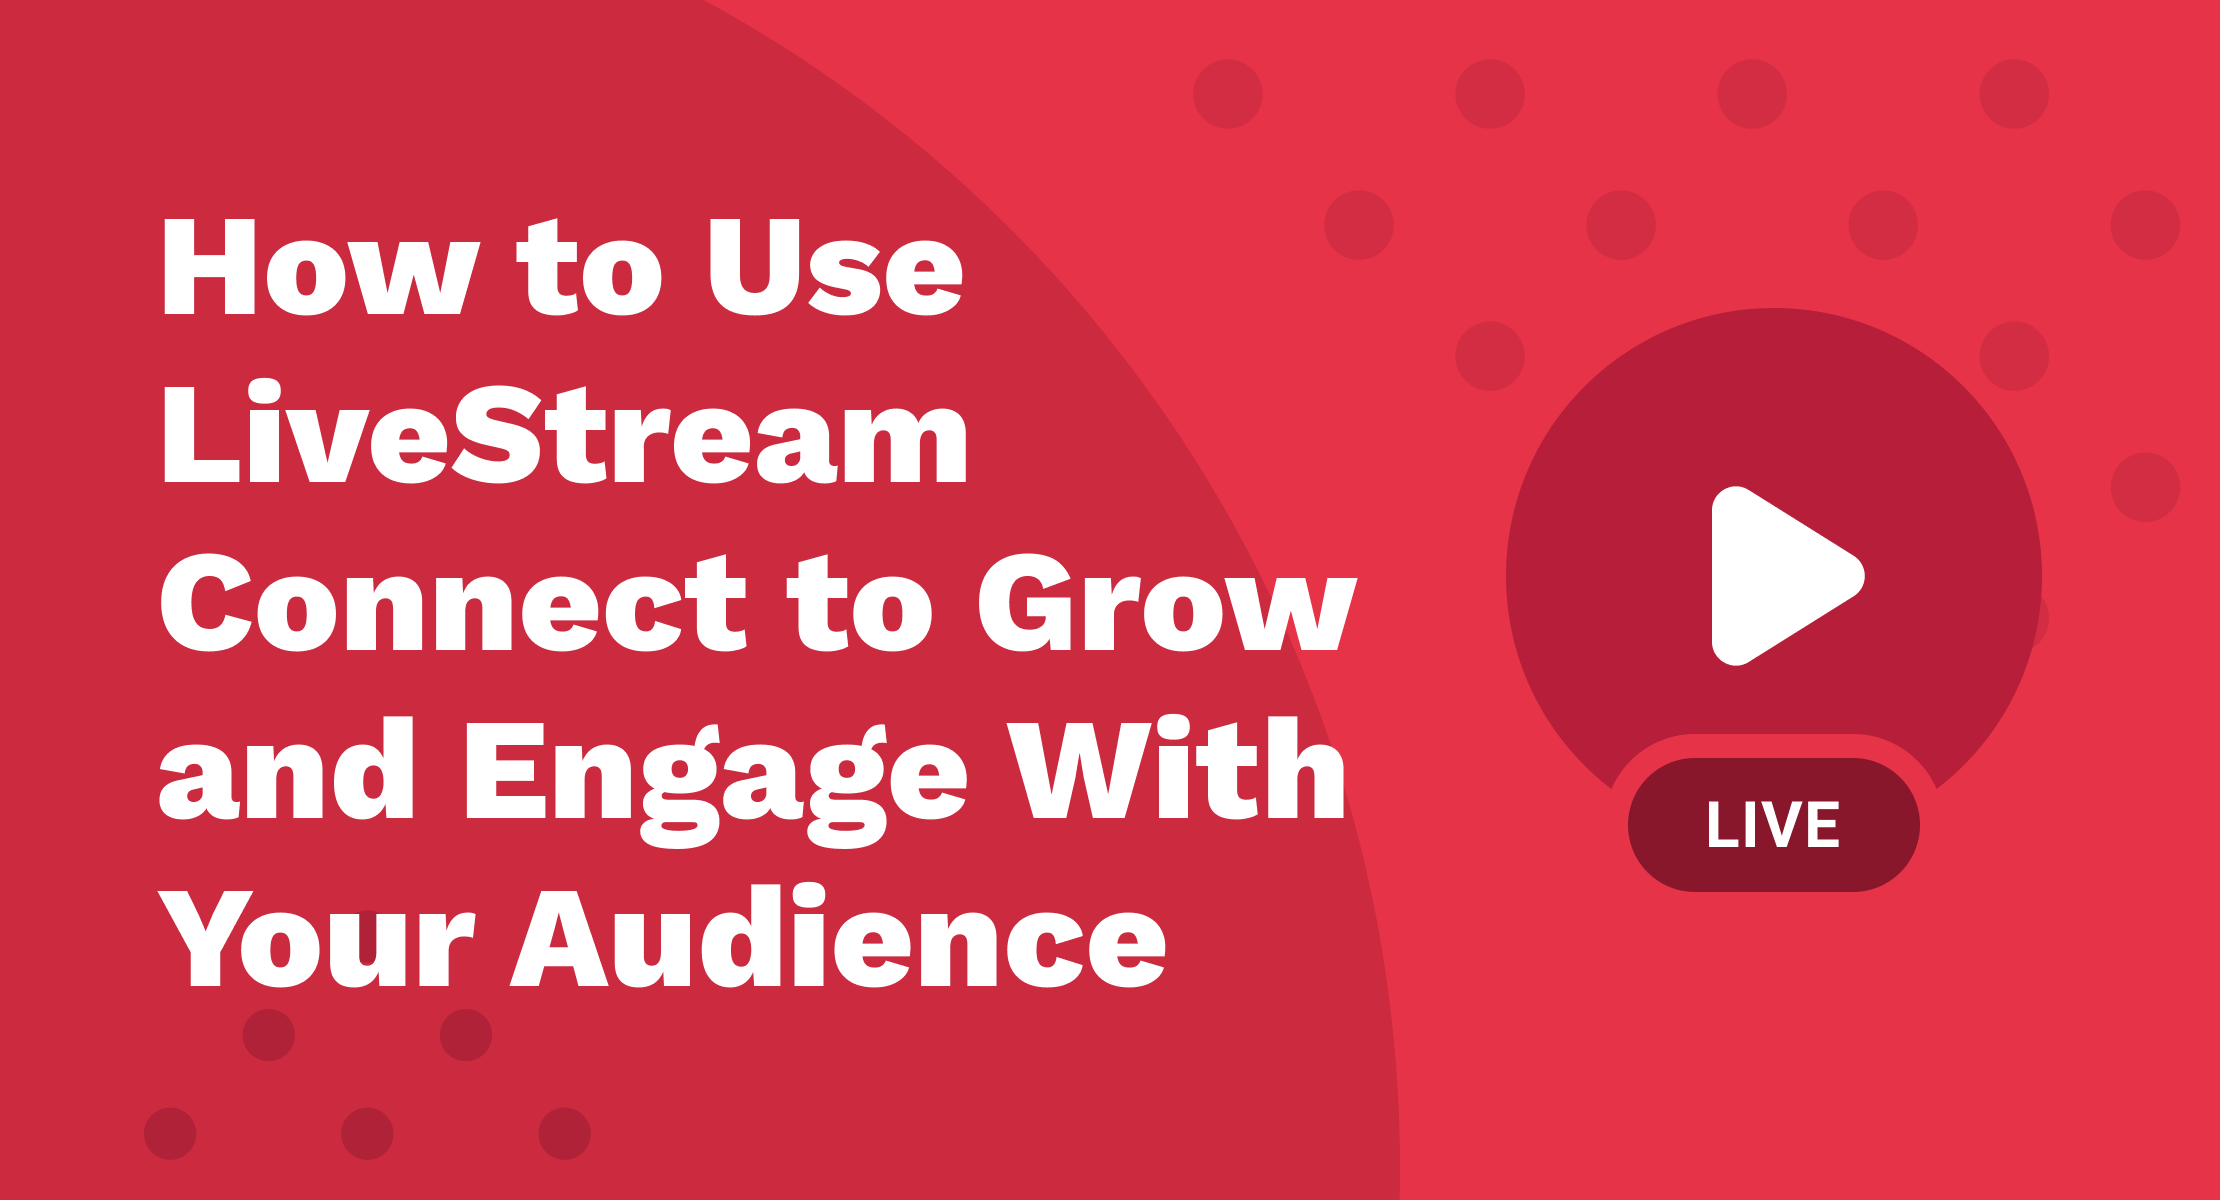 How to Use LiveStream Connect to Grow and Engage With Your Audience